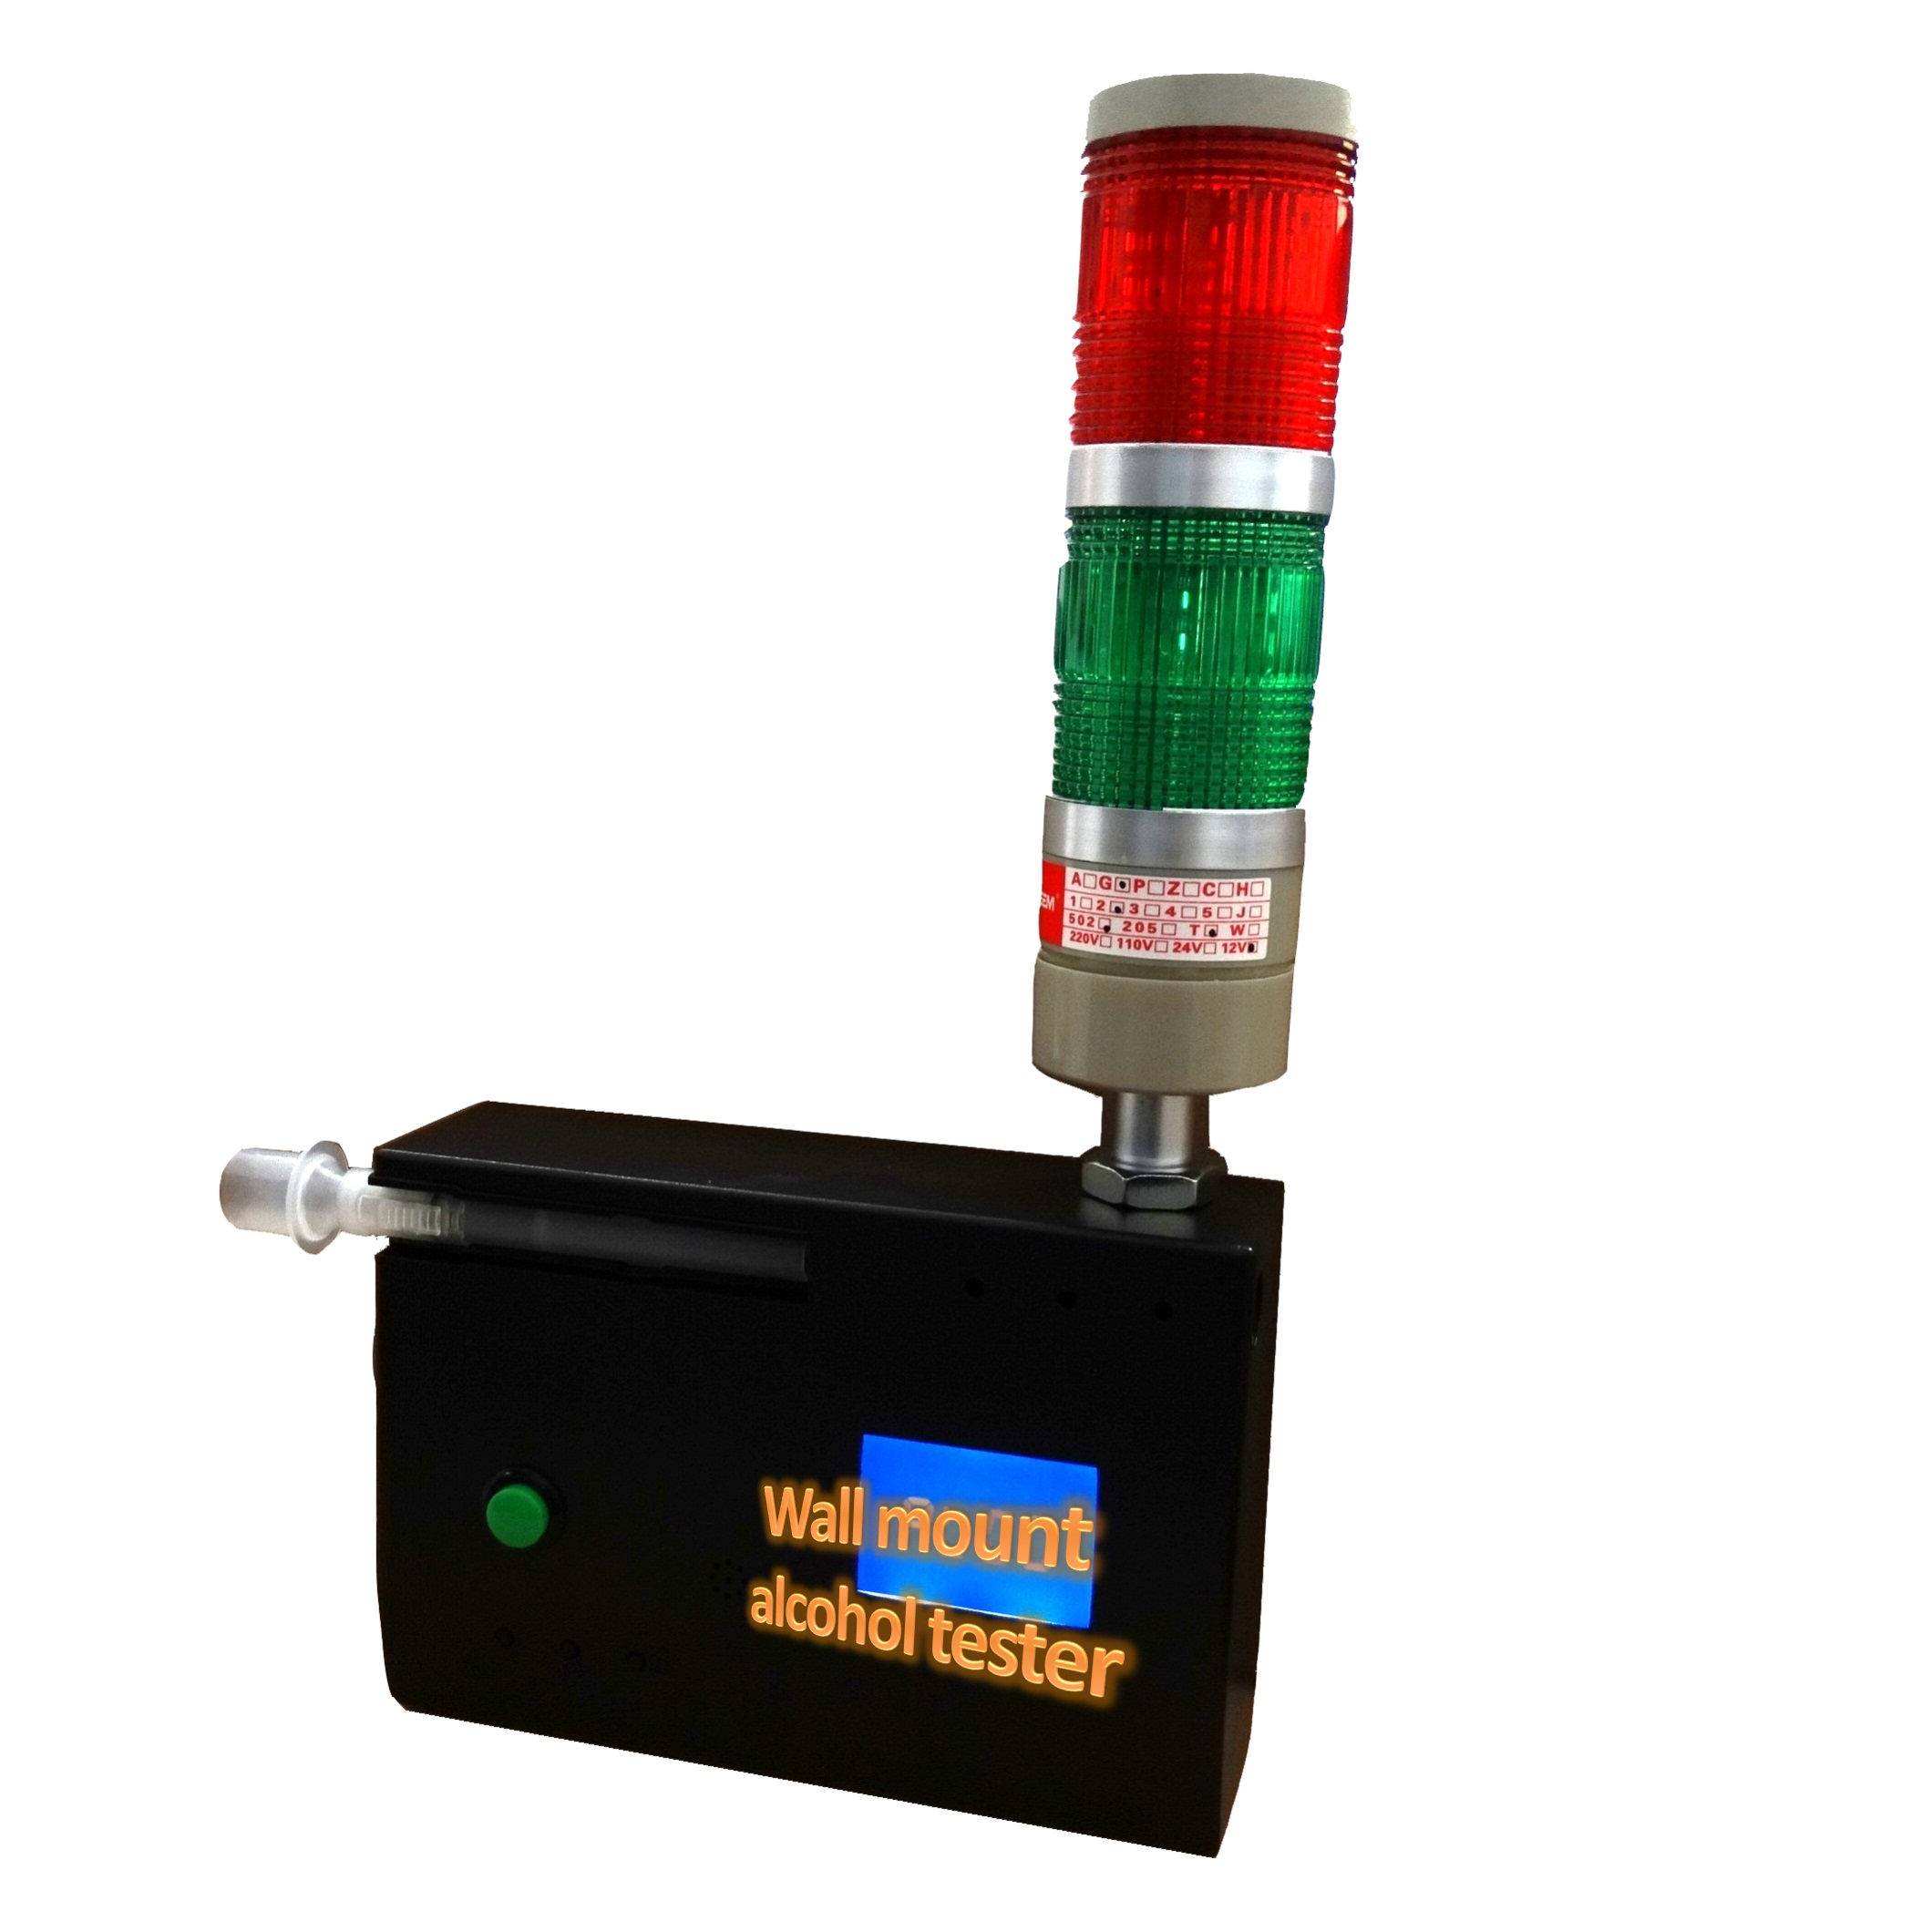 Alcohol tester, passive quick wall mount fuel cell screening tester 1st303QT